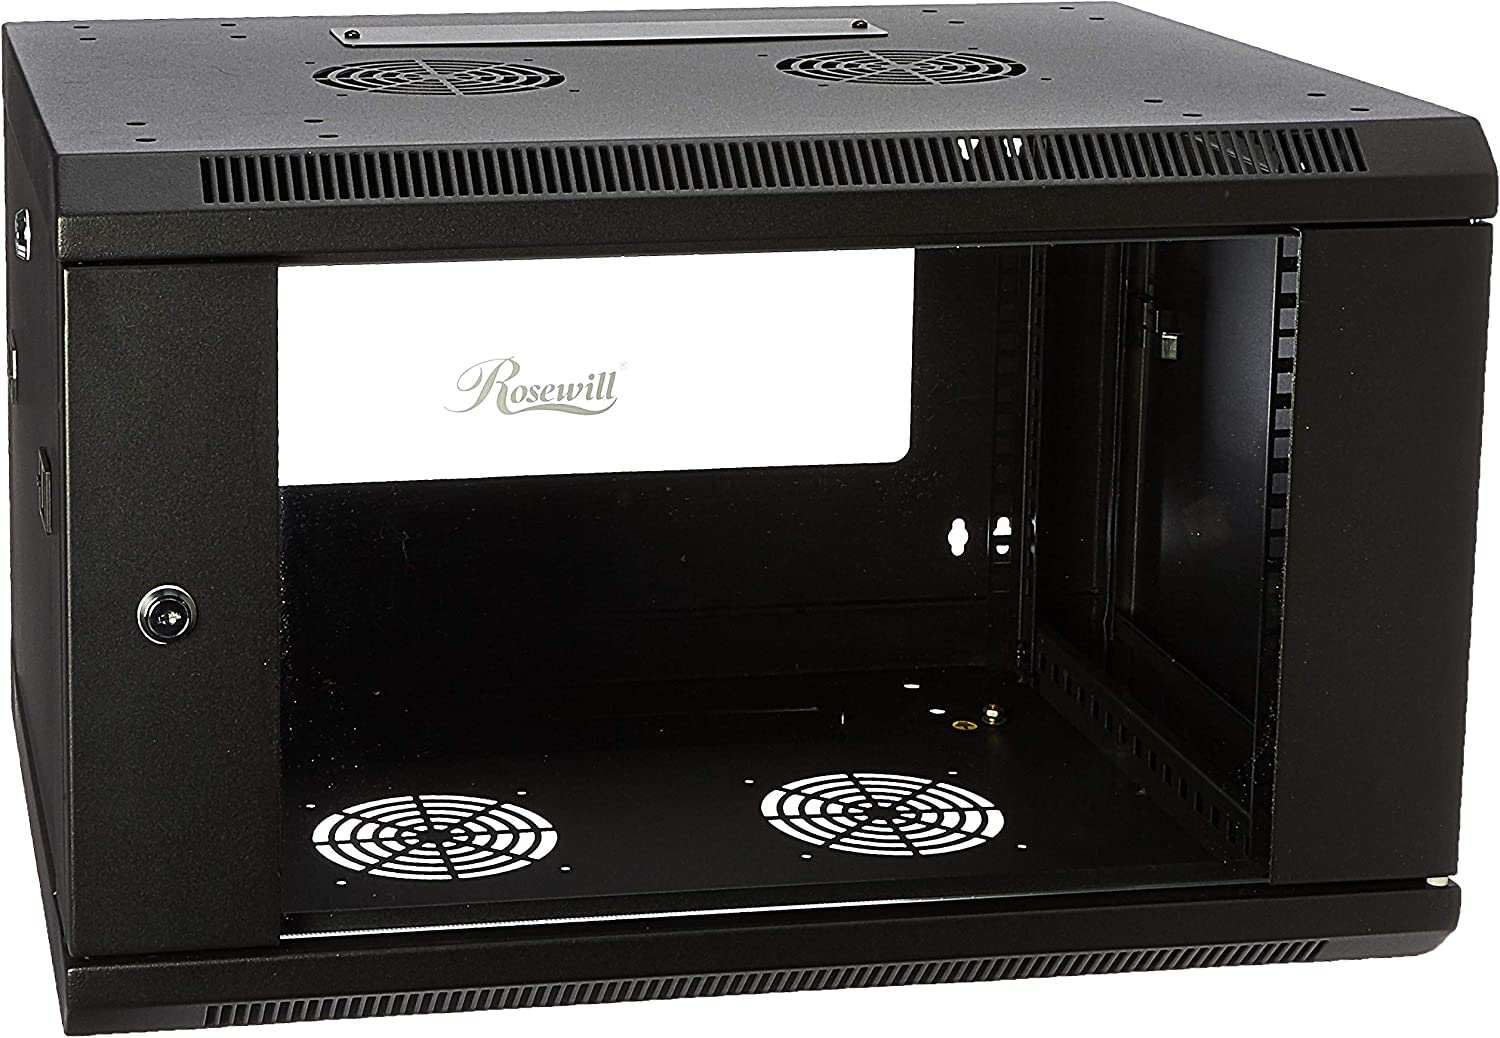 Rosewill Professional 6U Wall mount Cabinet Enclosure 19-Inch Server Network Rack With Locking Glass Door 16-Inches Deep Black (RSWM-6U001)